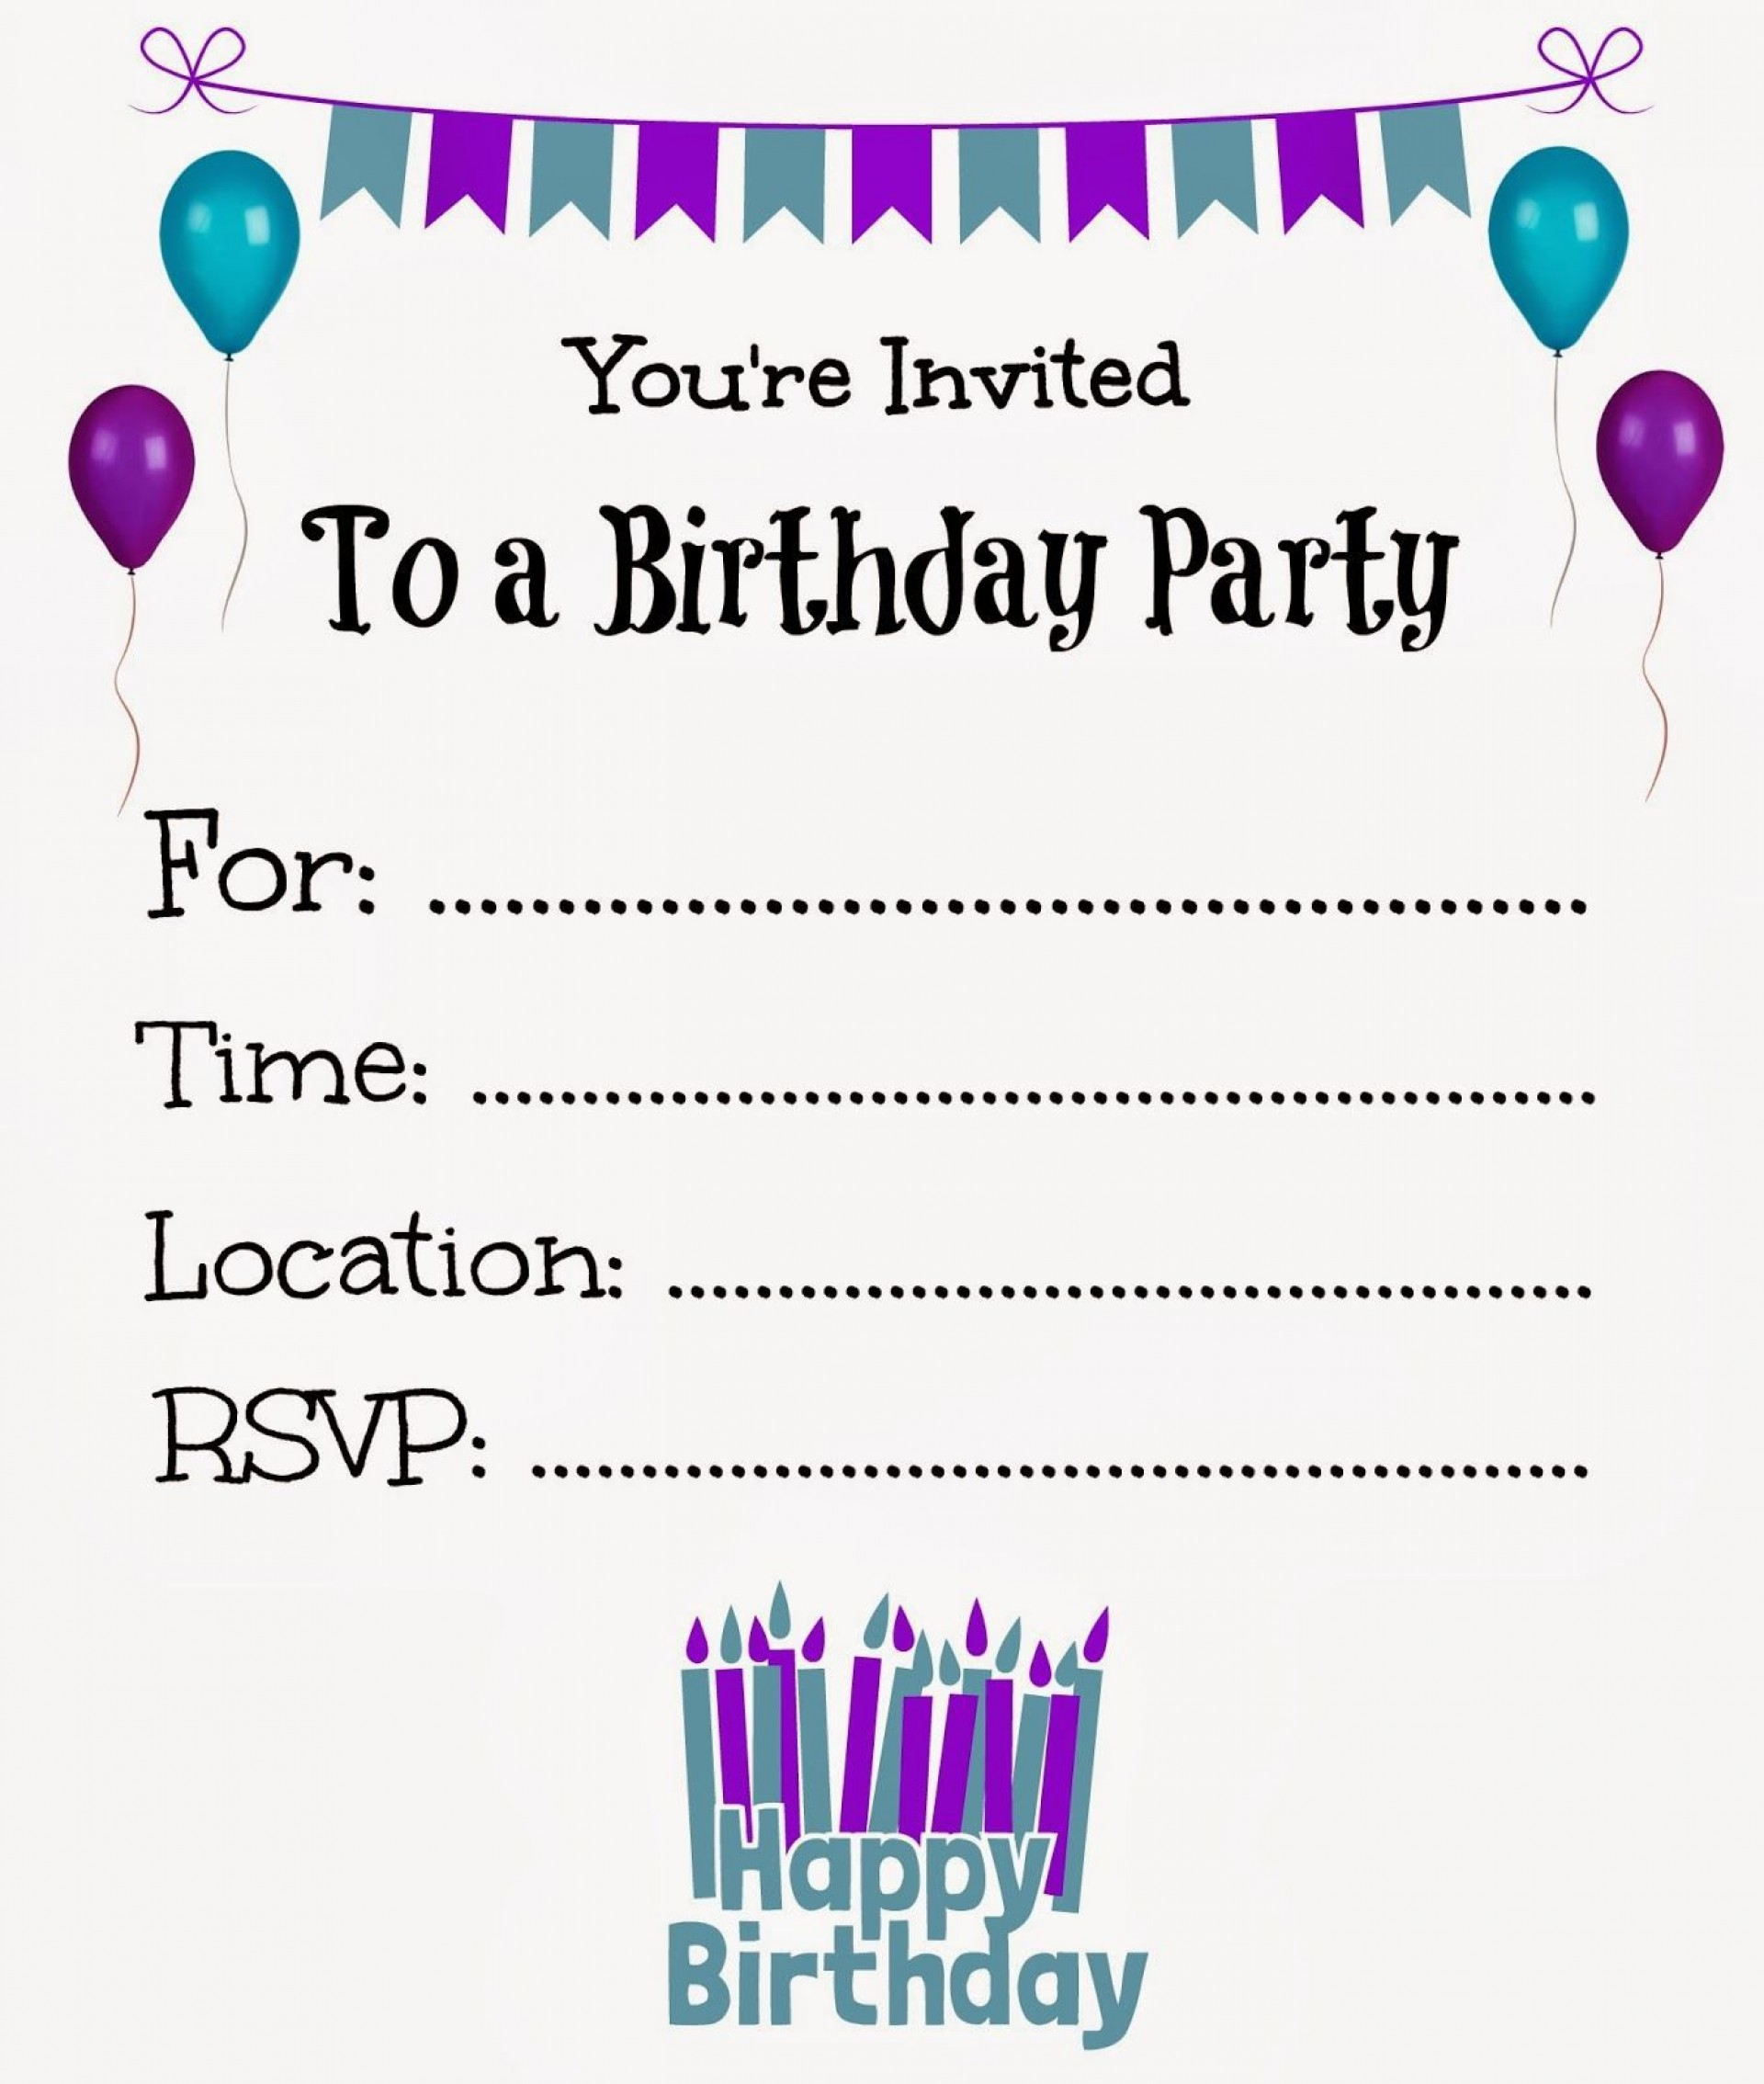 008 Fascinating Party Invite Template Word Example  Holiday Invitation Wording Sample Retirement Free Editable1920